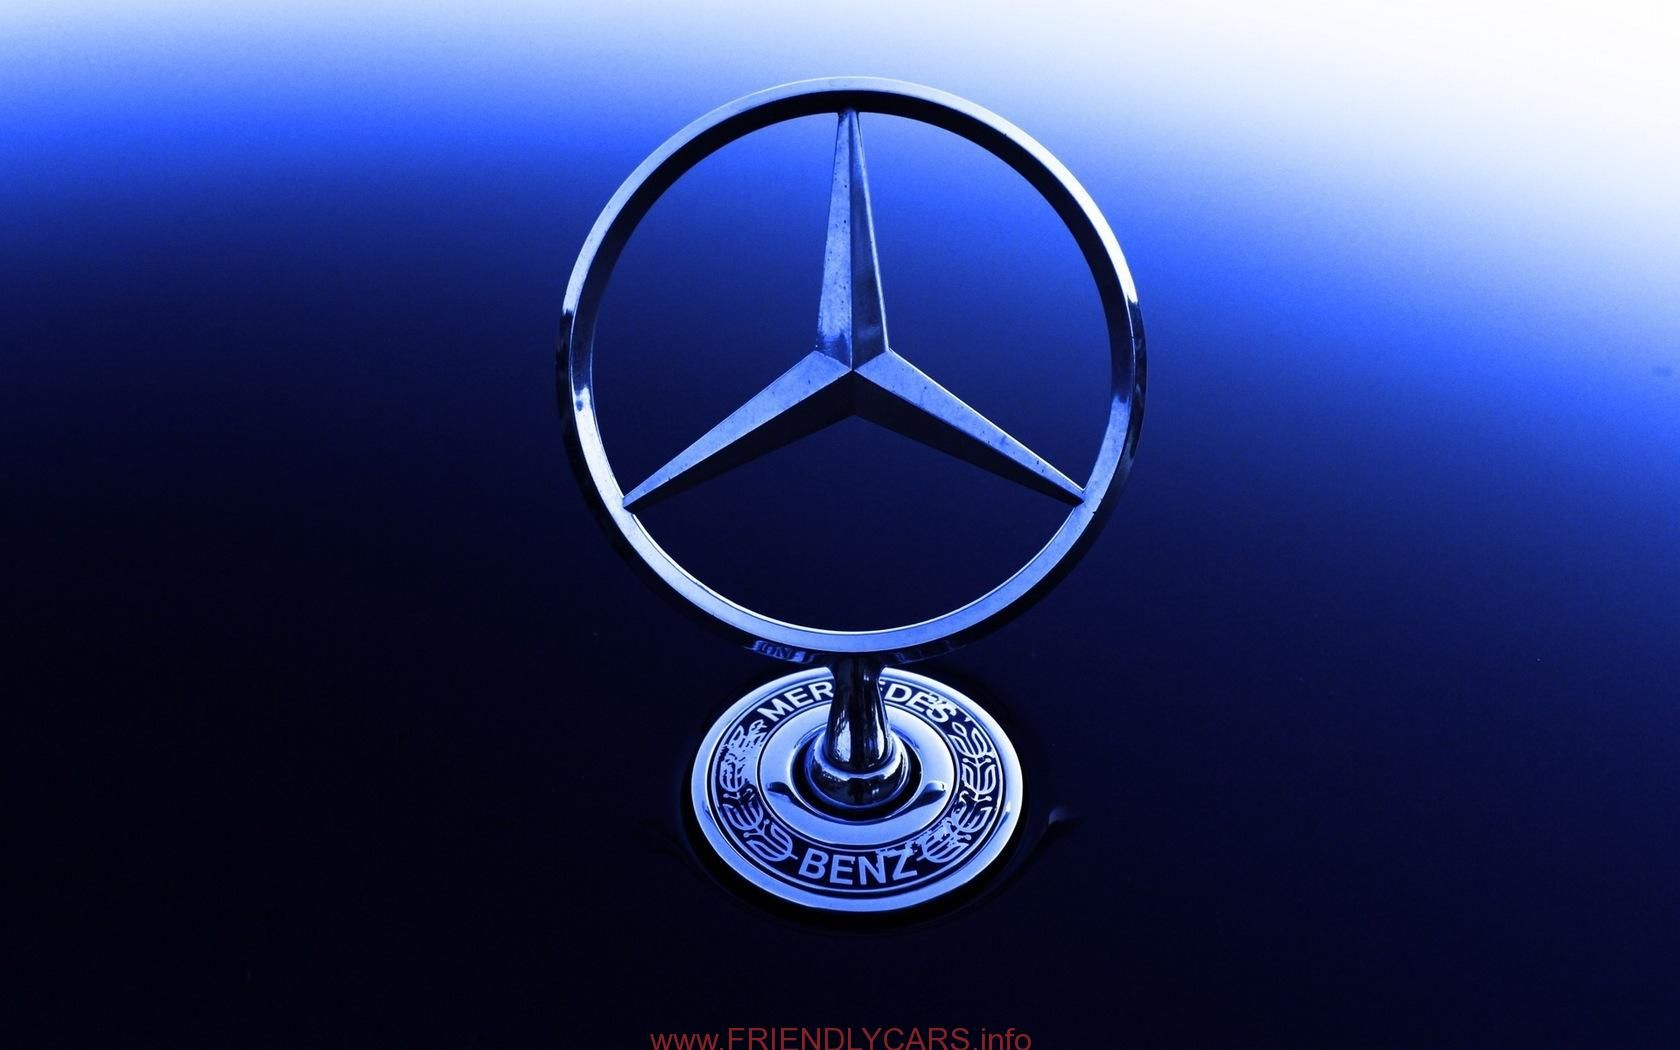 cool mercedes logo wallpaper iphone car images hd roundup